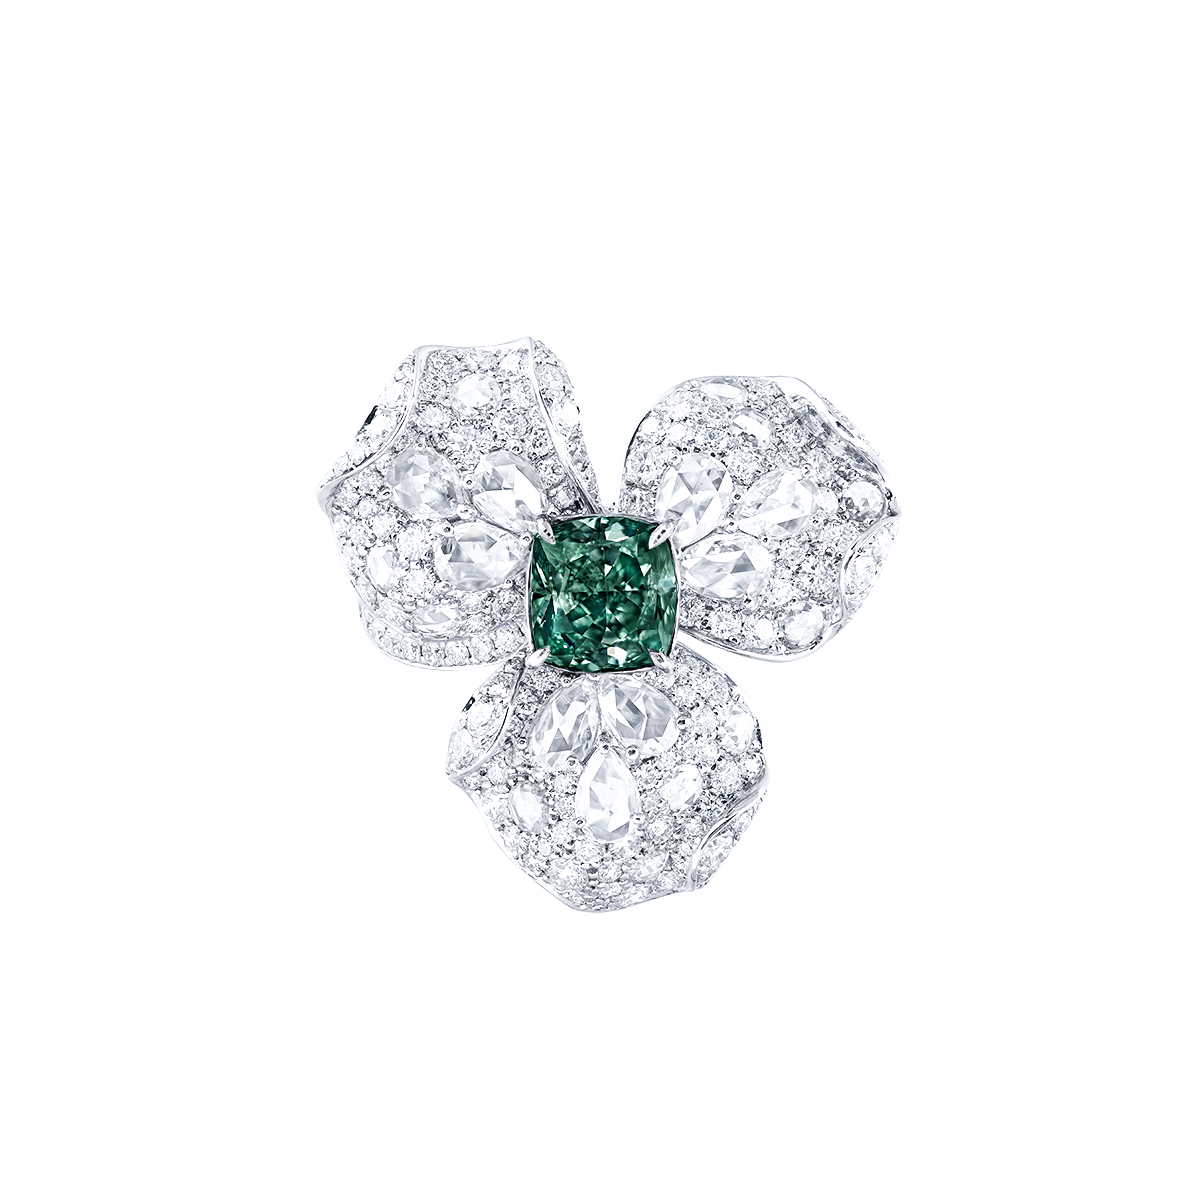 GIA 1.93 克拉 深彩綠鑽鑽戒